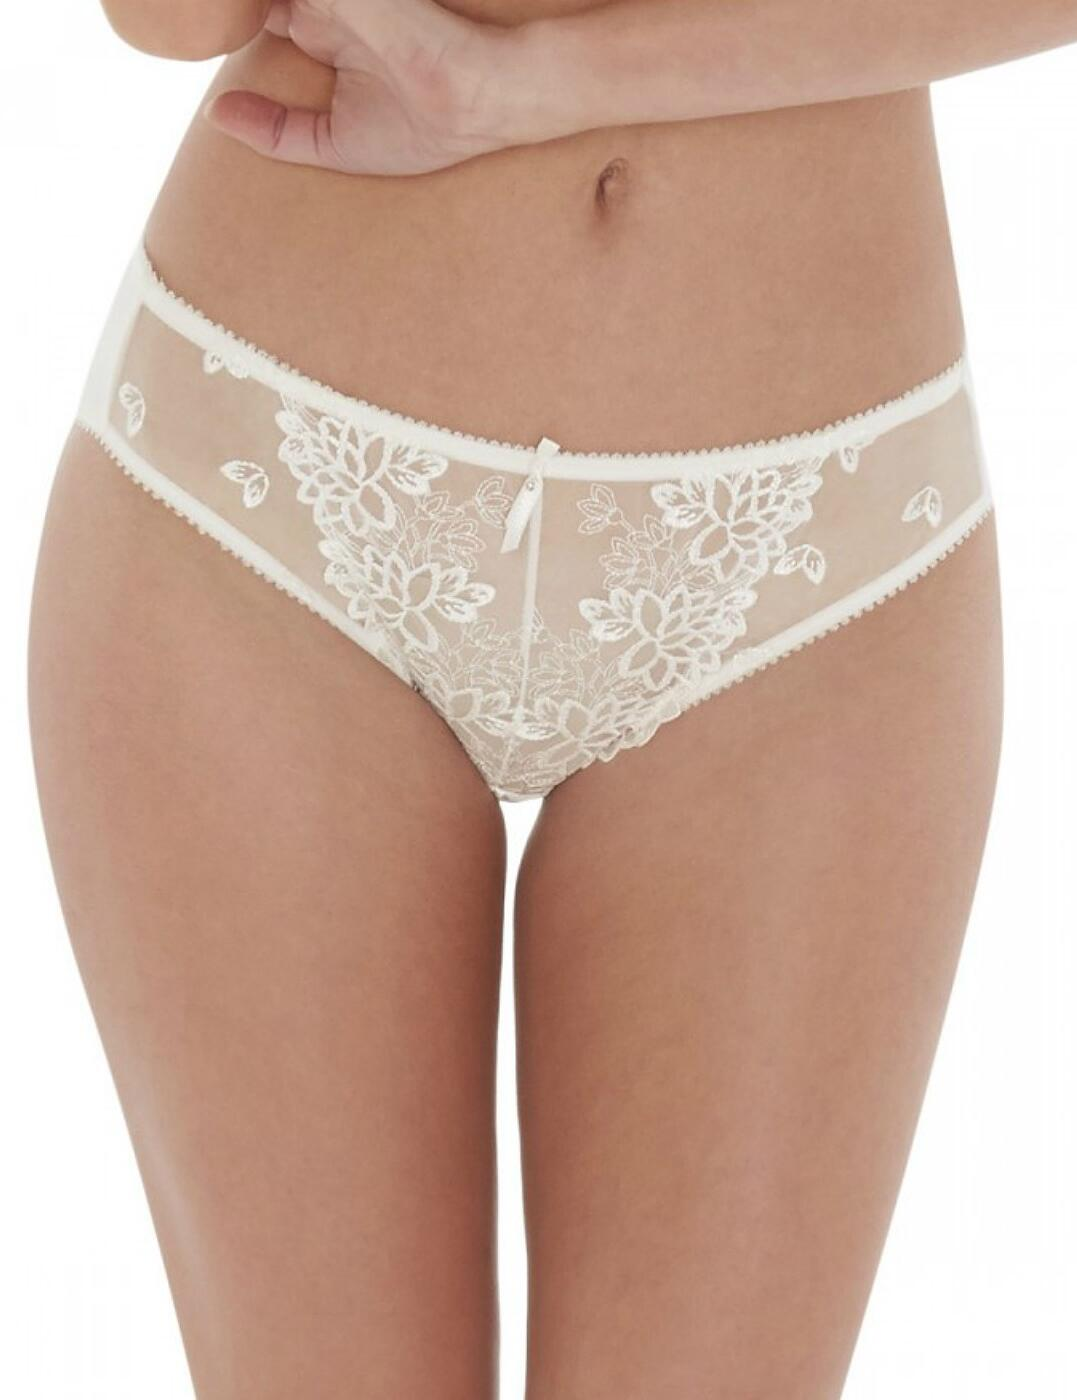 1490120 Charnos Suzette Thong - 1490120 Ivory